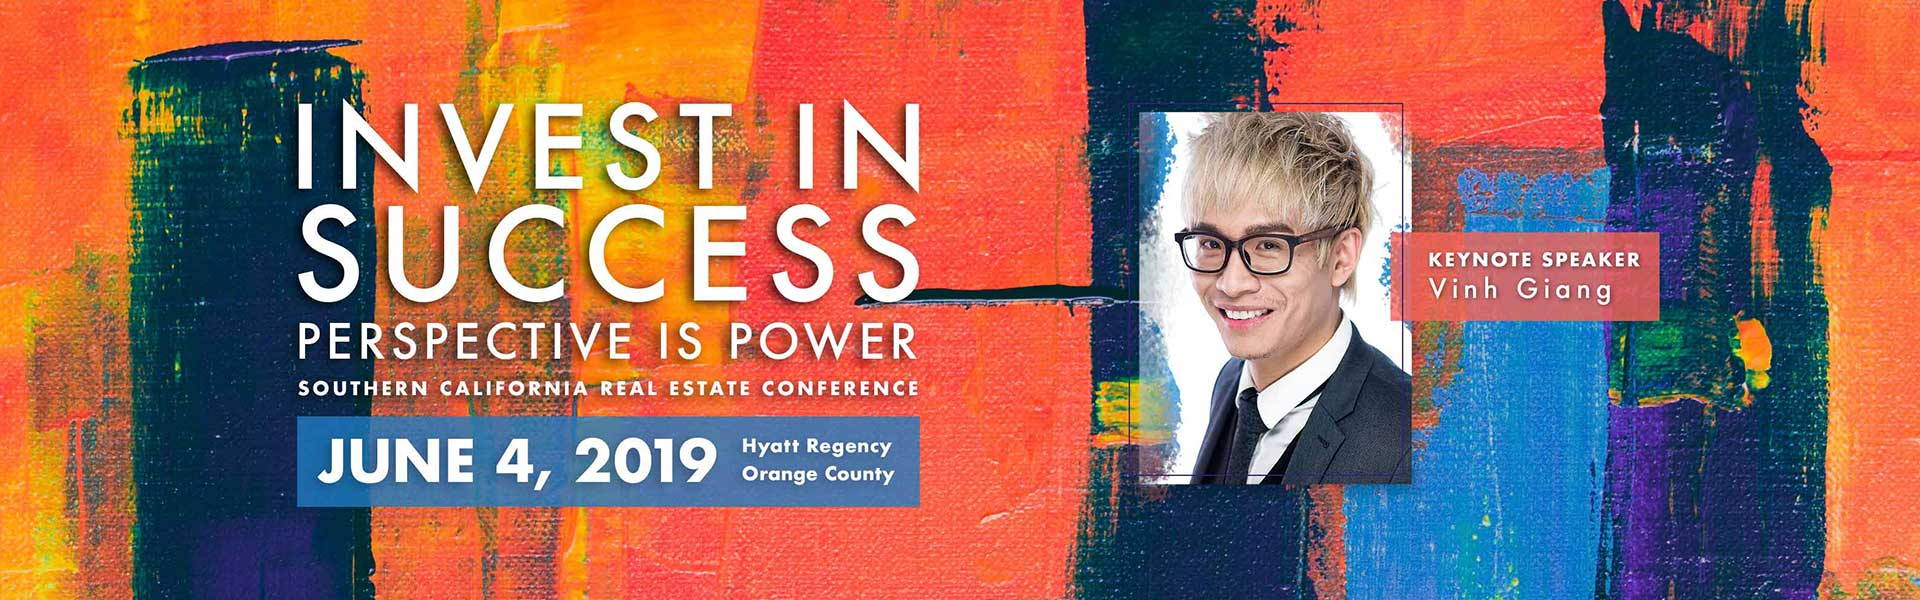 2019 Invest In Success Conference & Trade Show